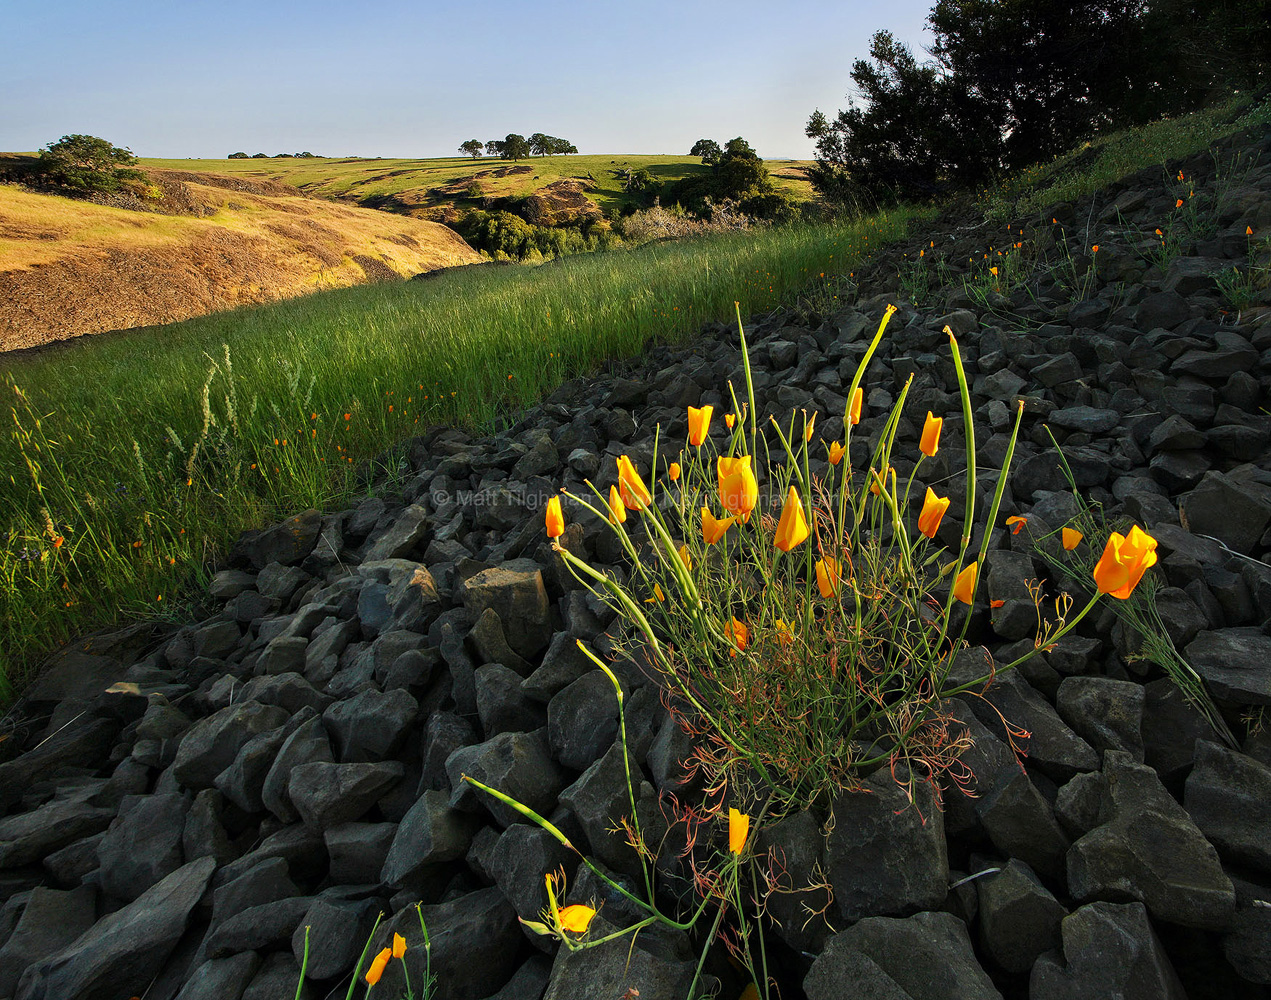 Fine art stock photograph from North Table Mountain, near Oroville California. The lush volcanic landscape hosts many wildflowers, like these California Poppies.